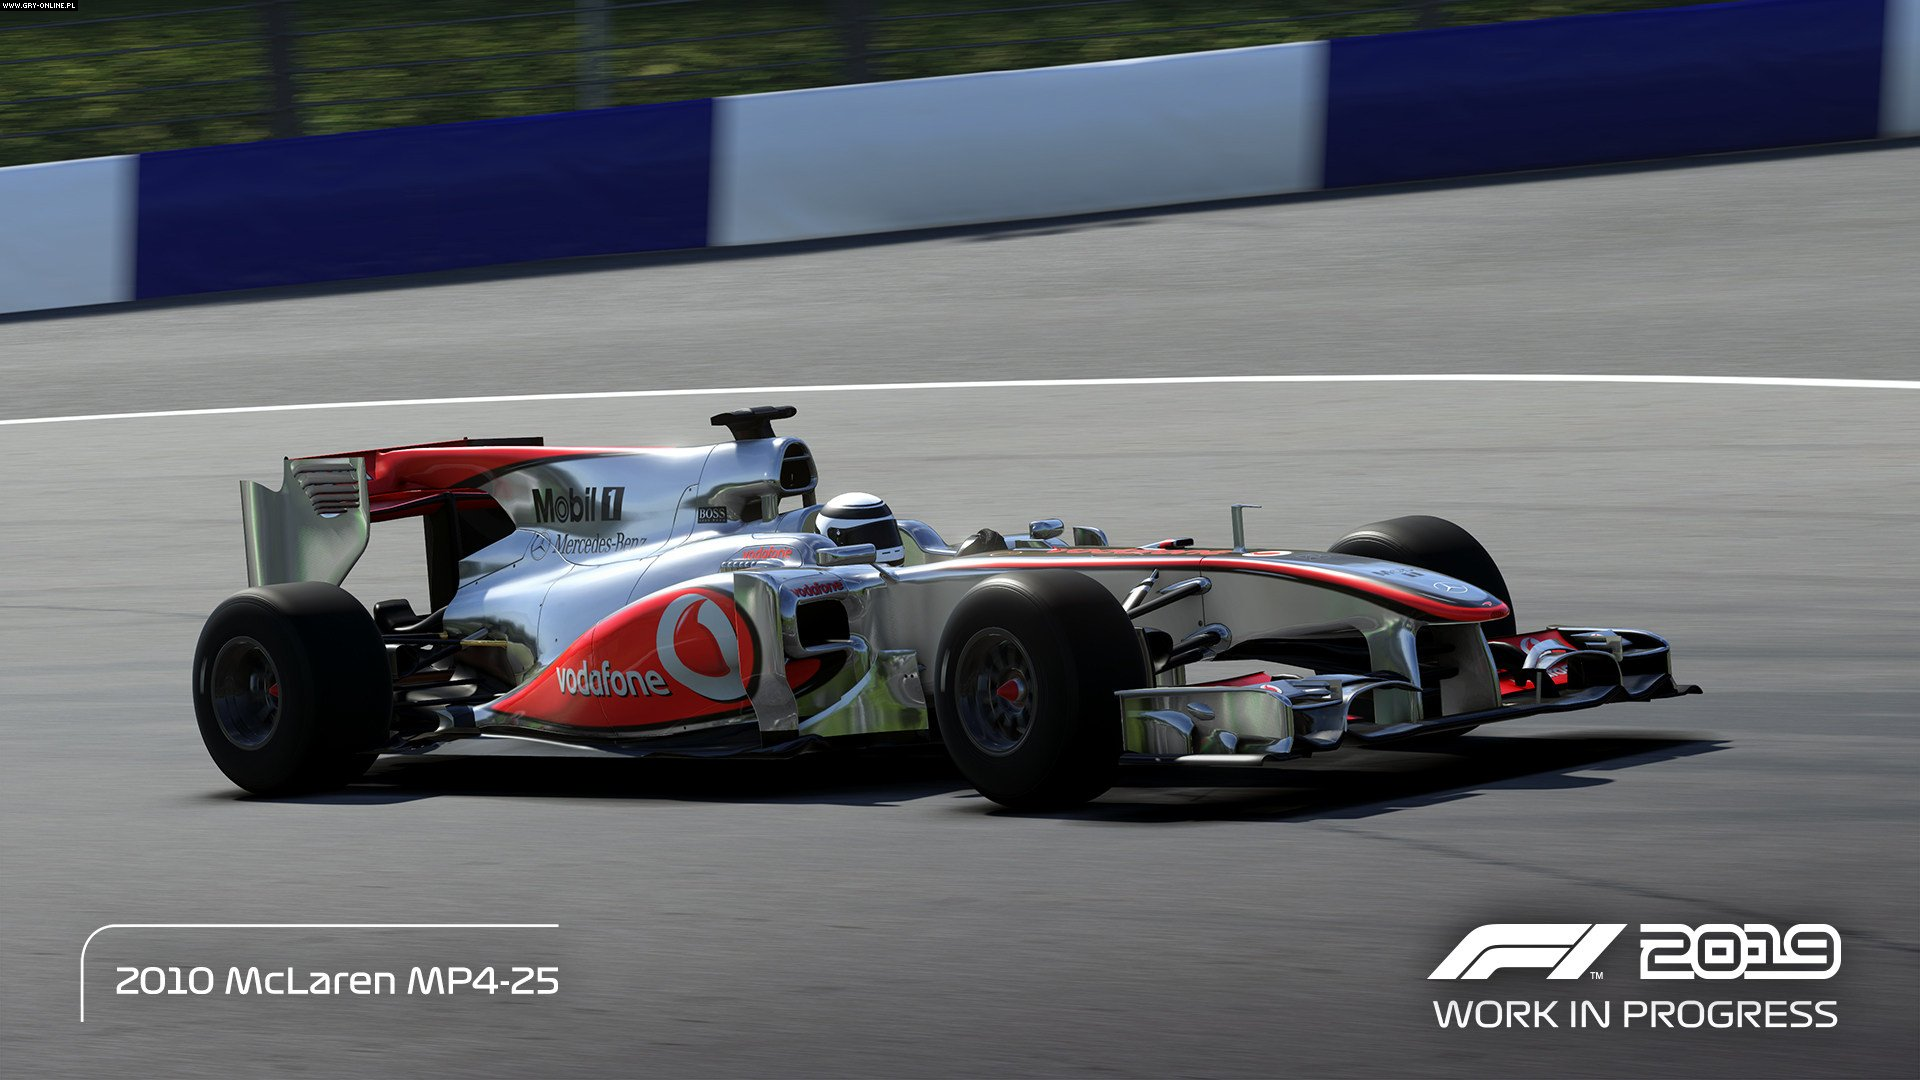 F1 2019 PC, PS4, XONE Games Image 93/104, Codemasters Software